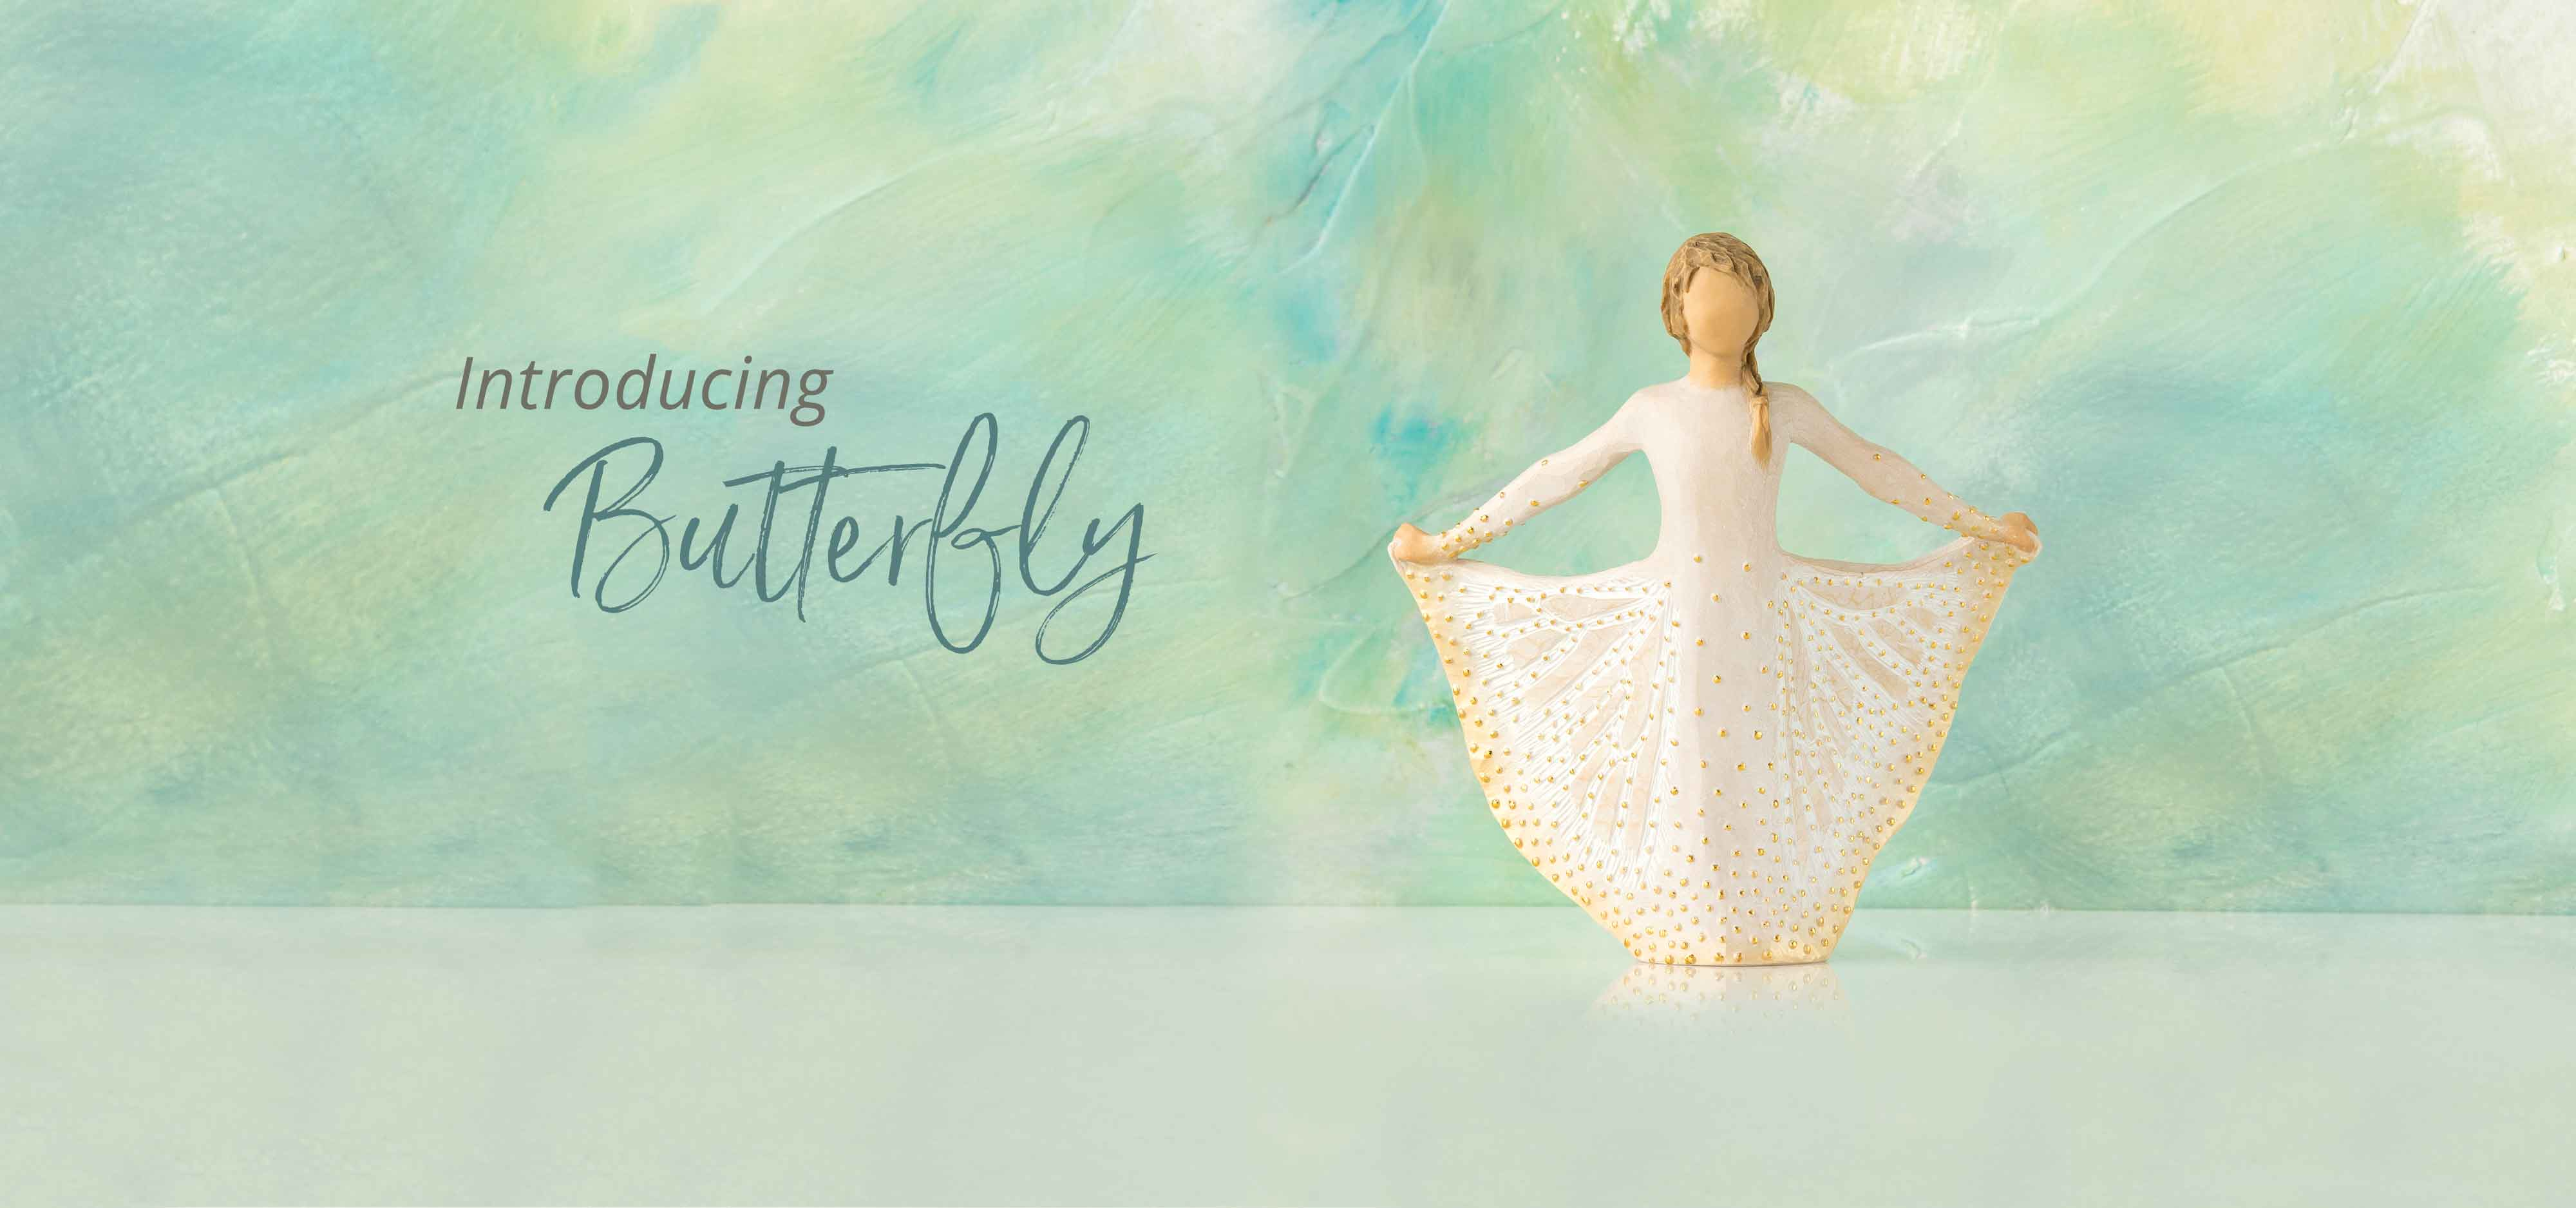 https://cdn7.bigcommerce.com/s-4phttkde7p/product_images/theme_images/Willow-Tree-Introducing-Butterfly.jpg?t=1524179925